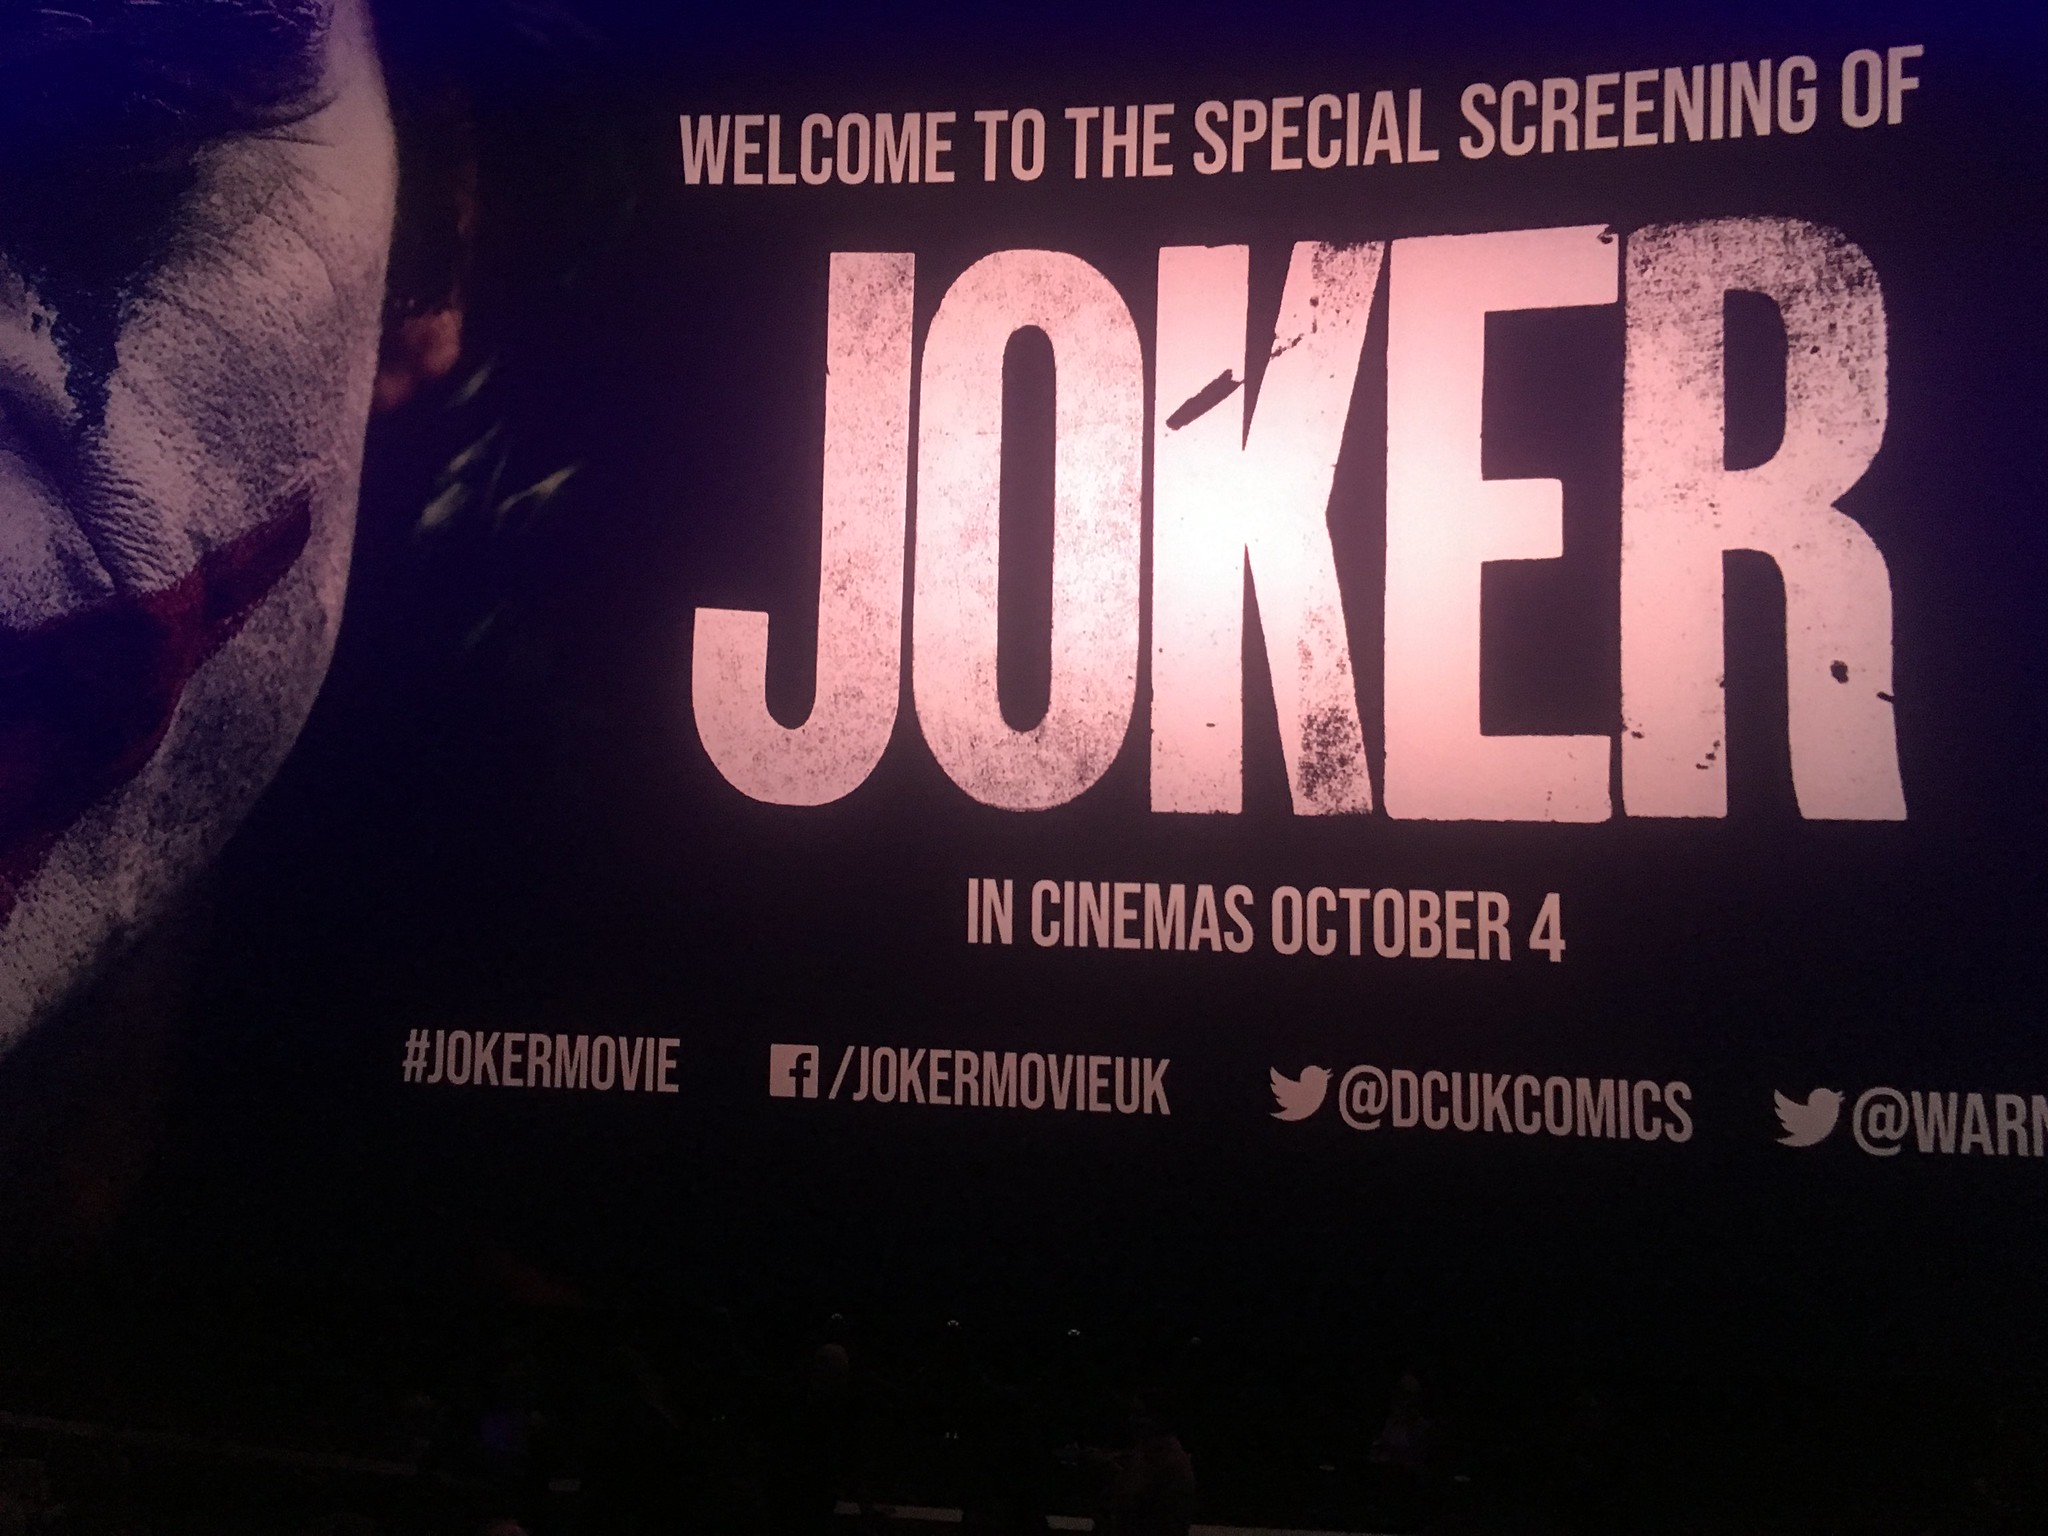 Joaquin Phoenix Todd Phillips London screening Joker 25 September 2019 Leicester Square